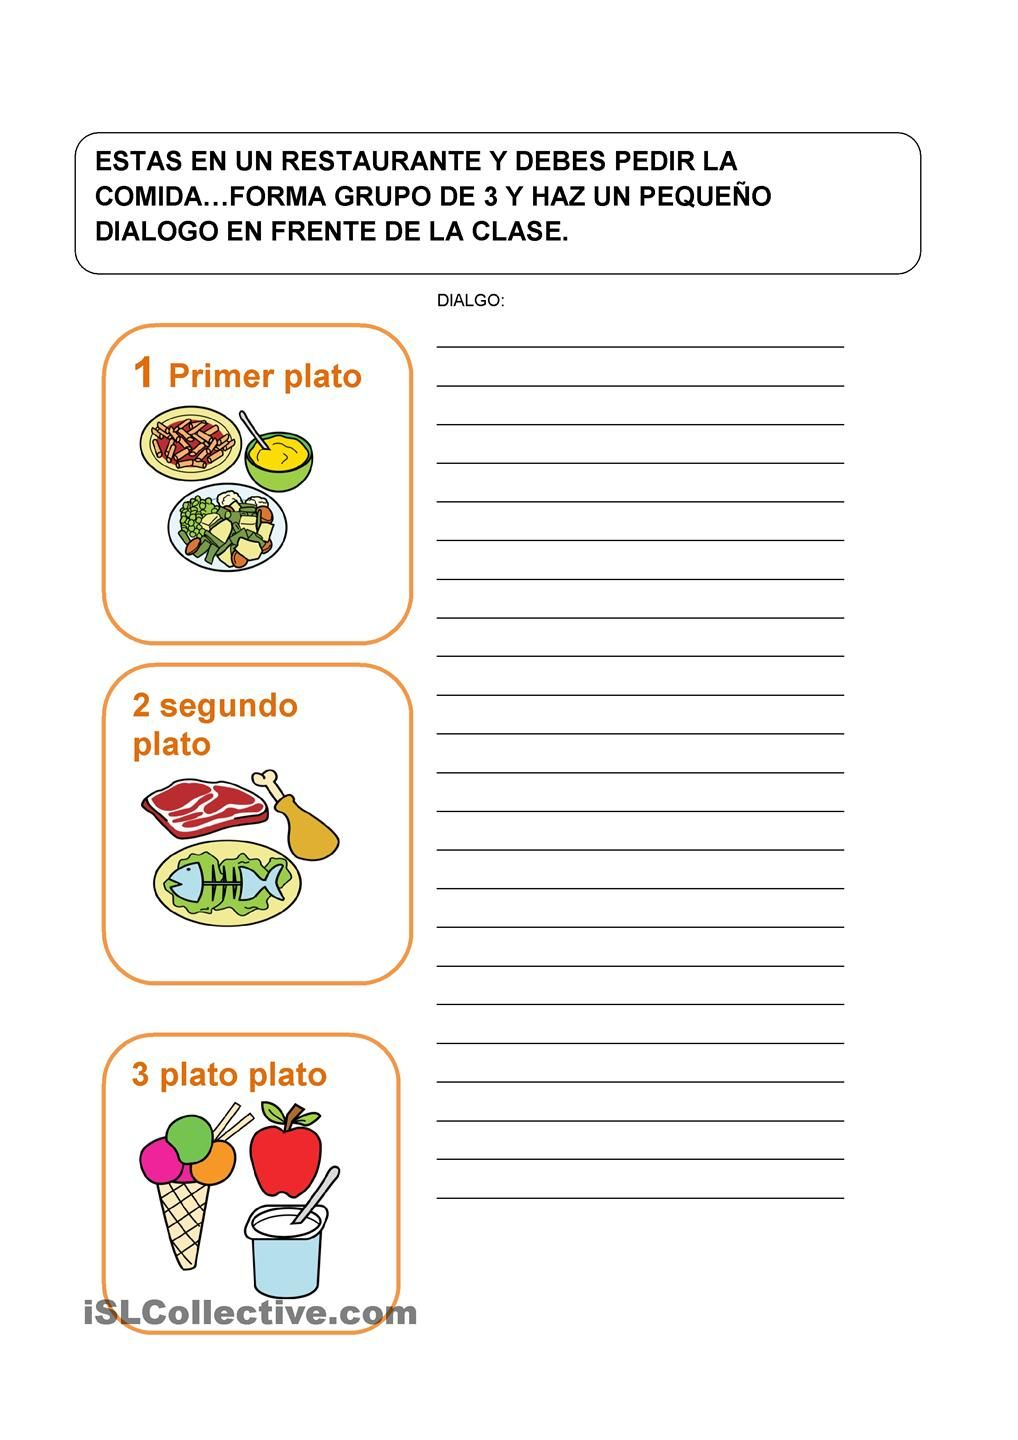 Worksheets Spanish Food Worksheet la comida foodcomida pinterest spanish teacher and teacherstudent centered resourcesworksheetsreading comprehensionfoodstudent resources